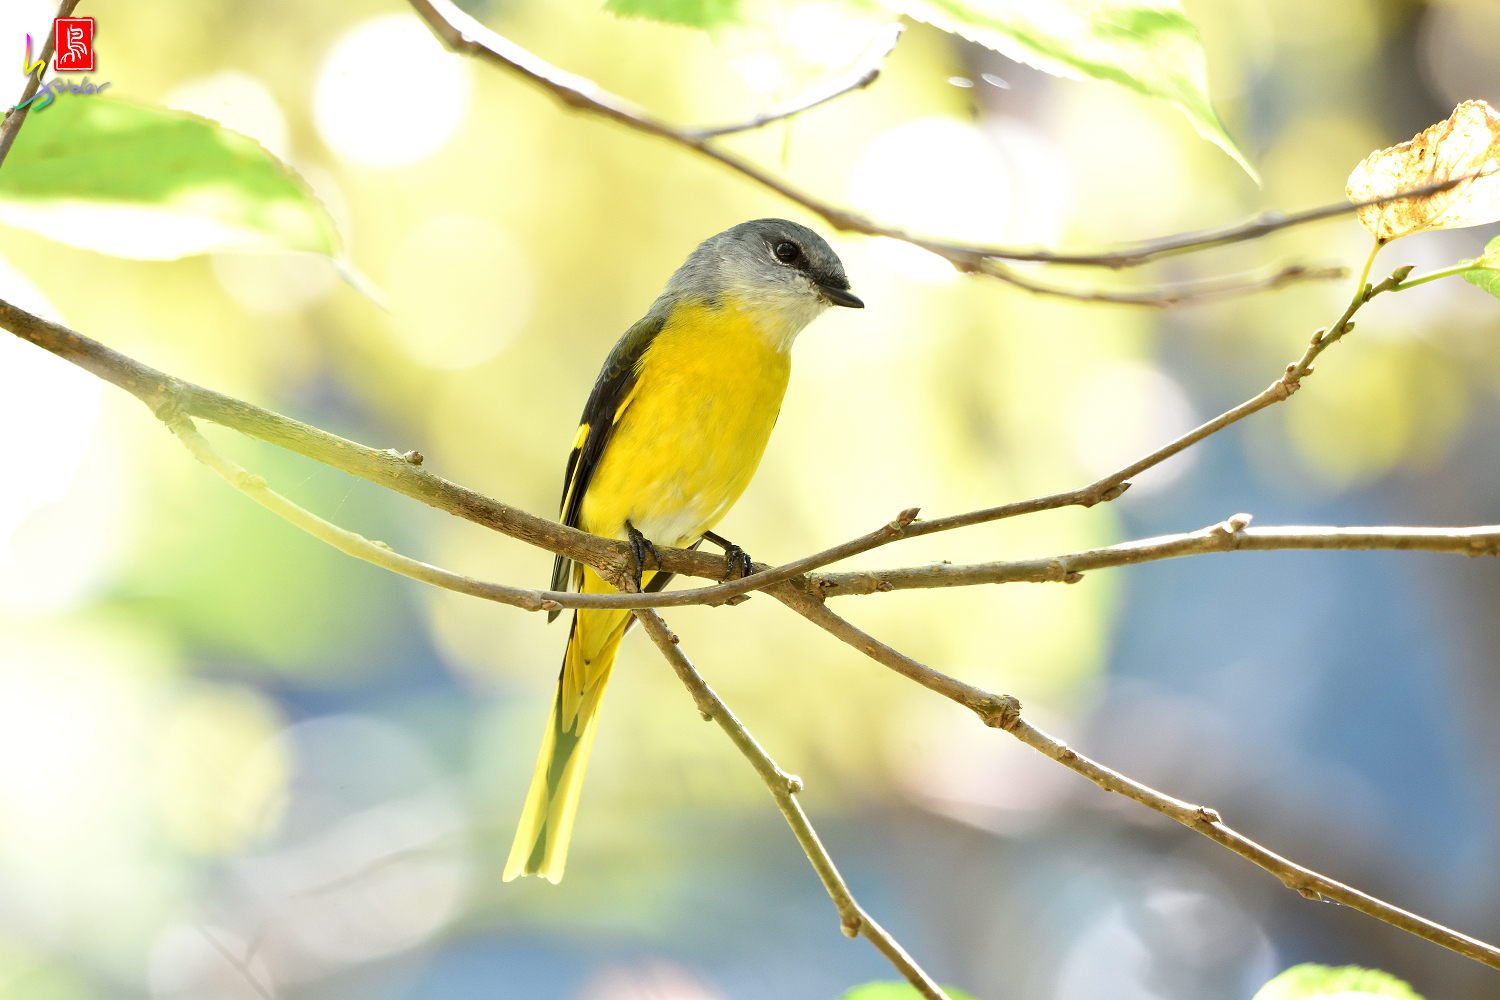 Gray-chinned_Minivet_6874